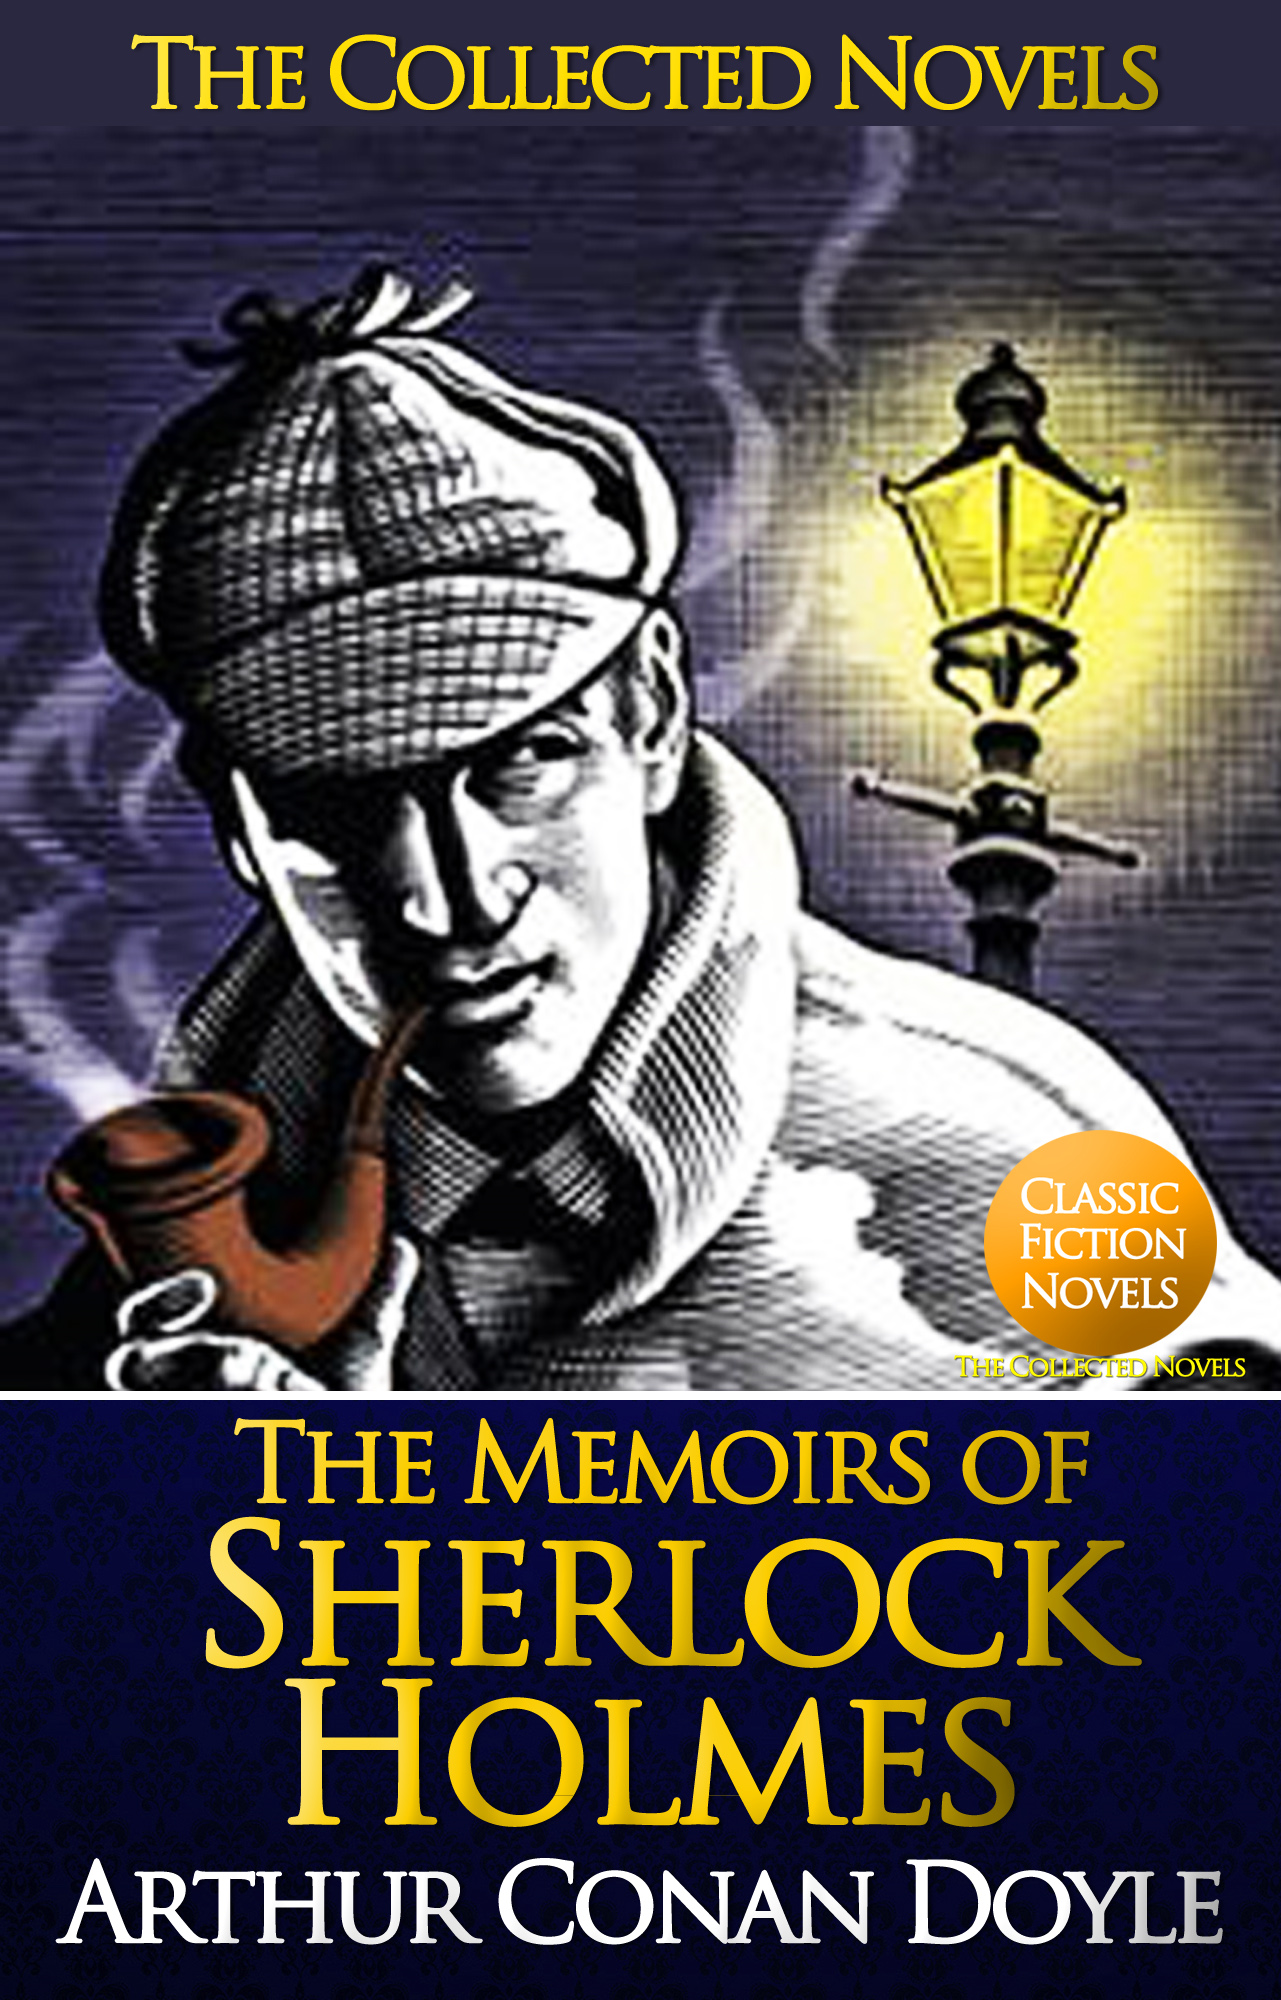 The Memoirs of Sherlock Holmes (Illustrated) By: Sir Arthur Conan Doyle